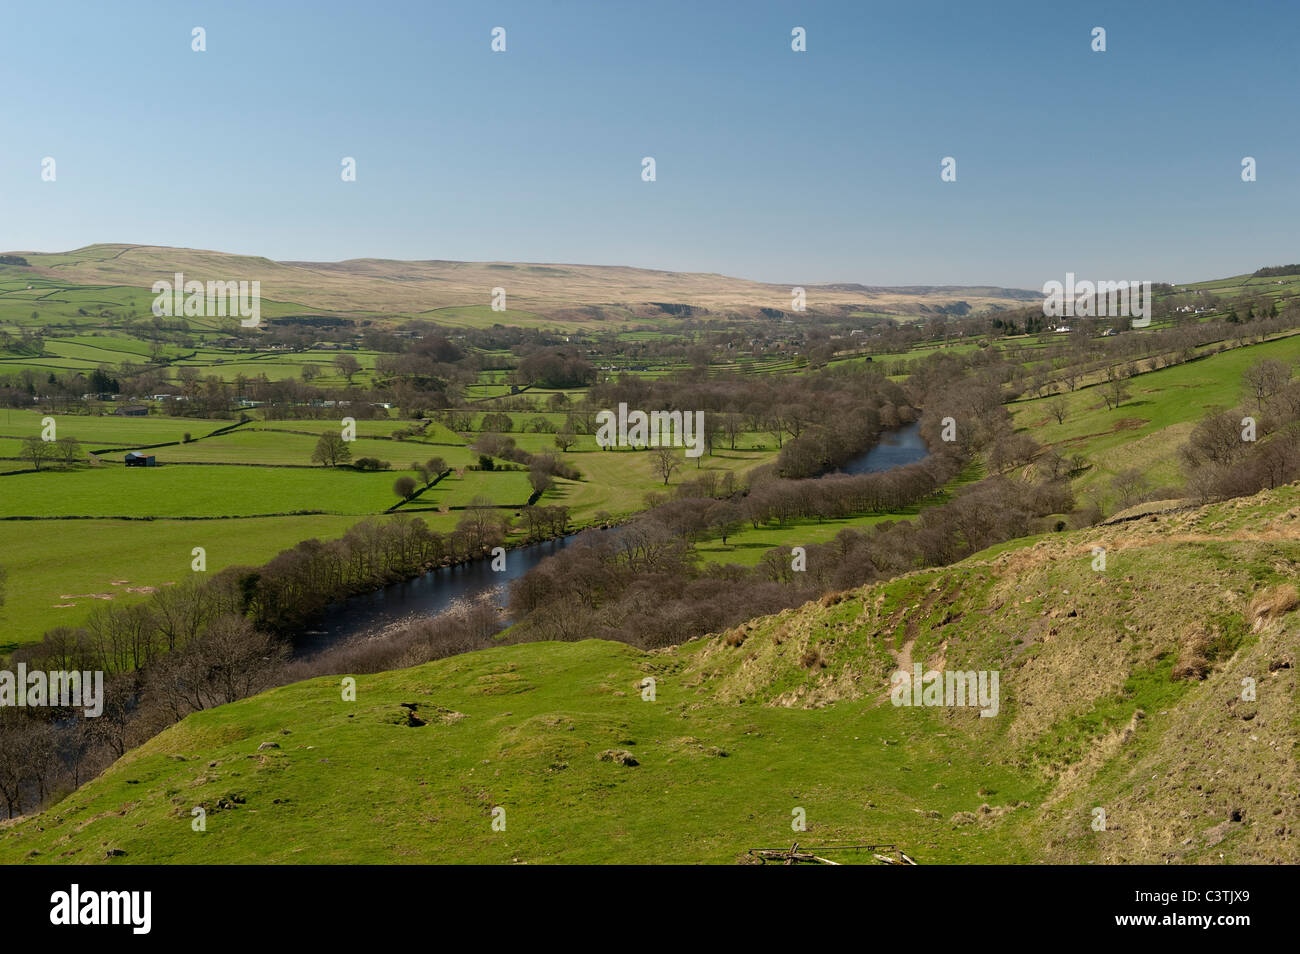 Looking up Teesdale valley from Eggleston towards Middleton in Teesdale - Stock Image